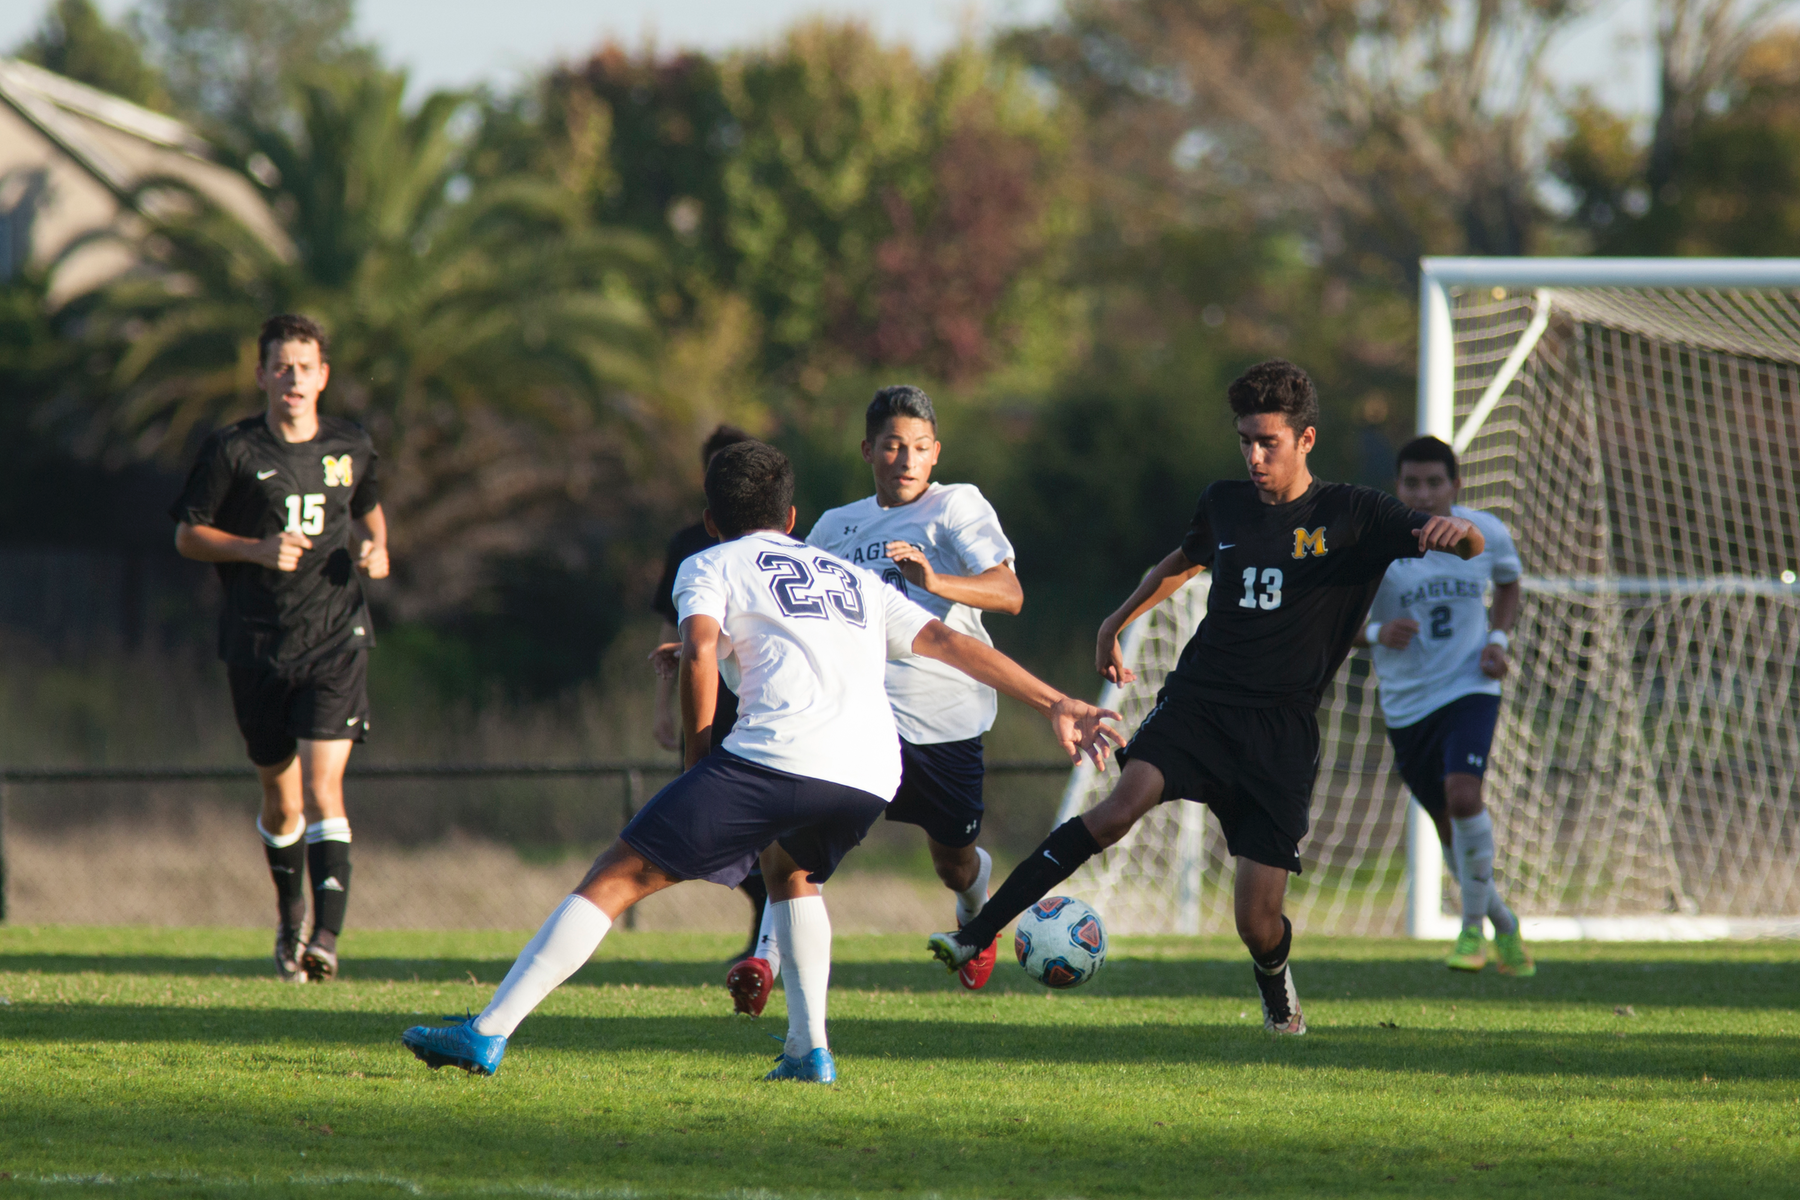 Men's Soccer Drops Home Affair To Yuba 3-1